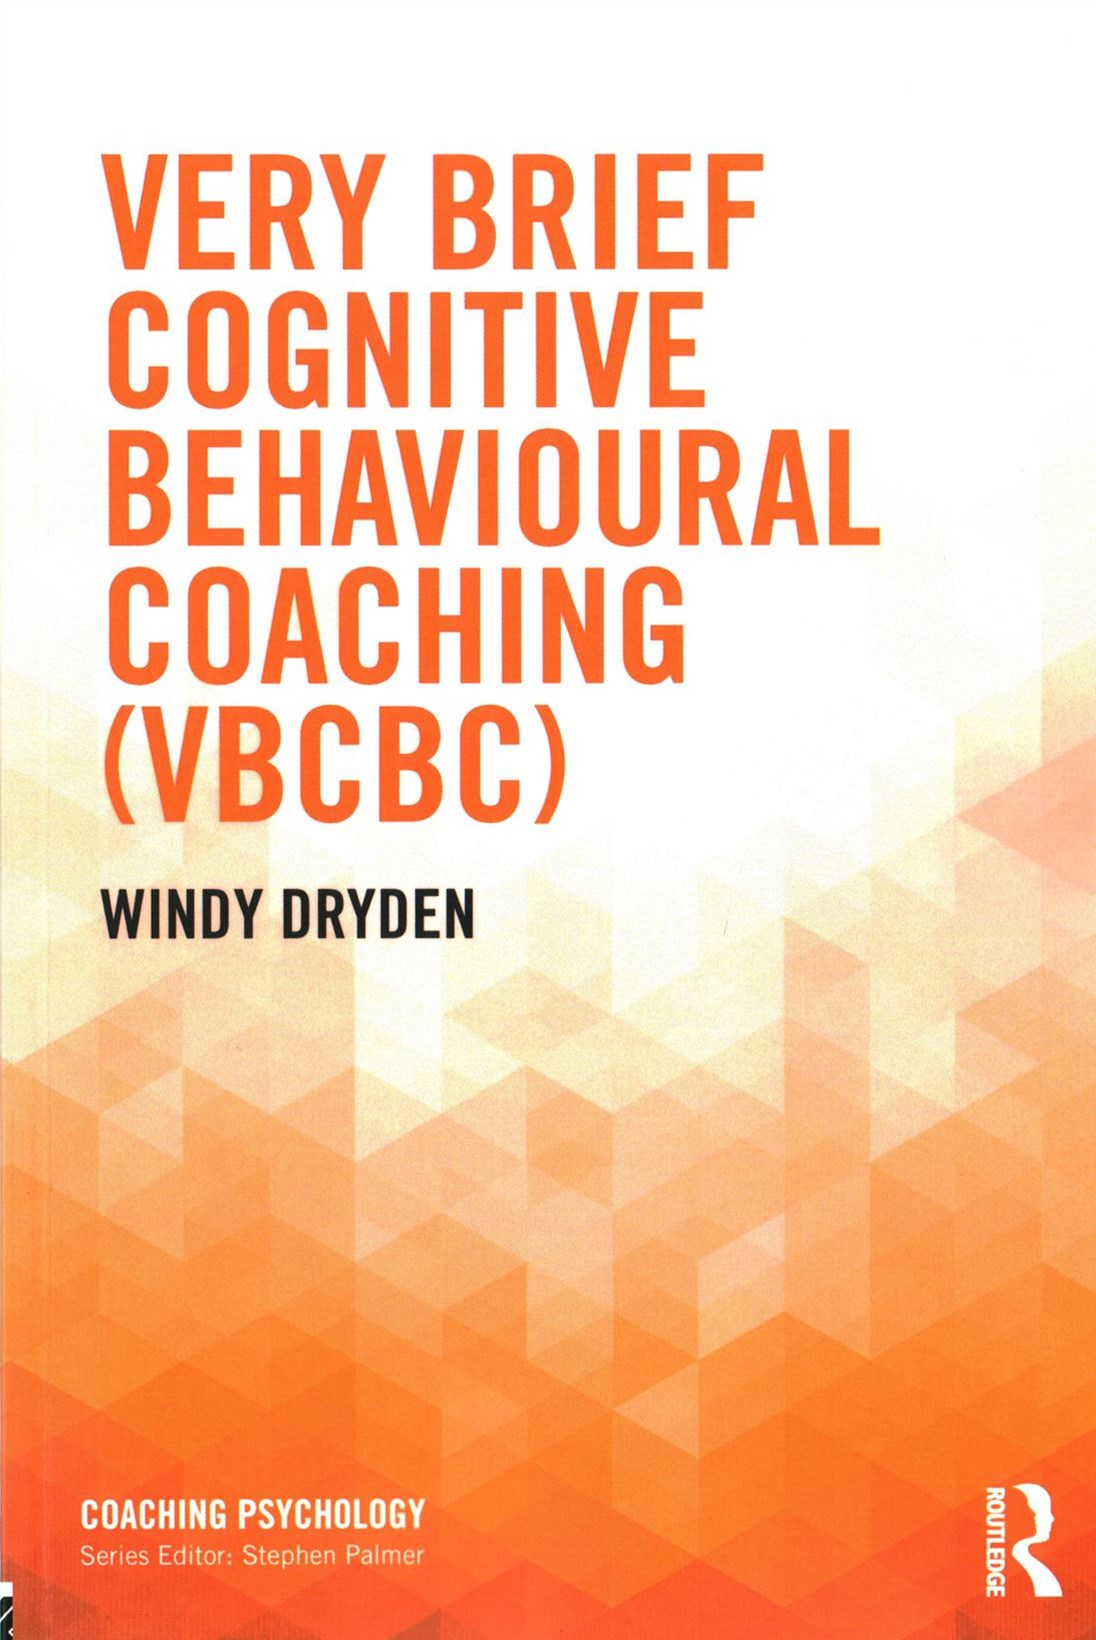 Very Brief Cognitive Behavioural Coaching VBCBC